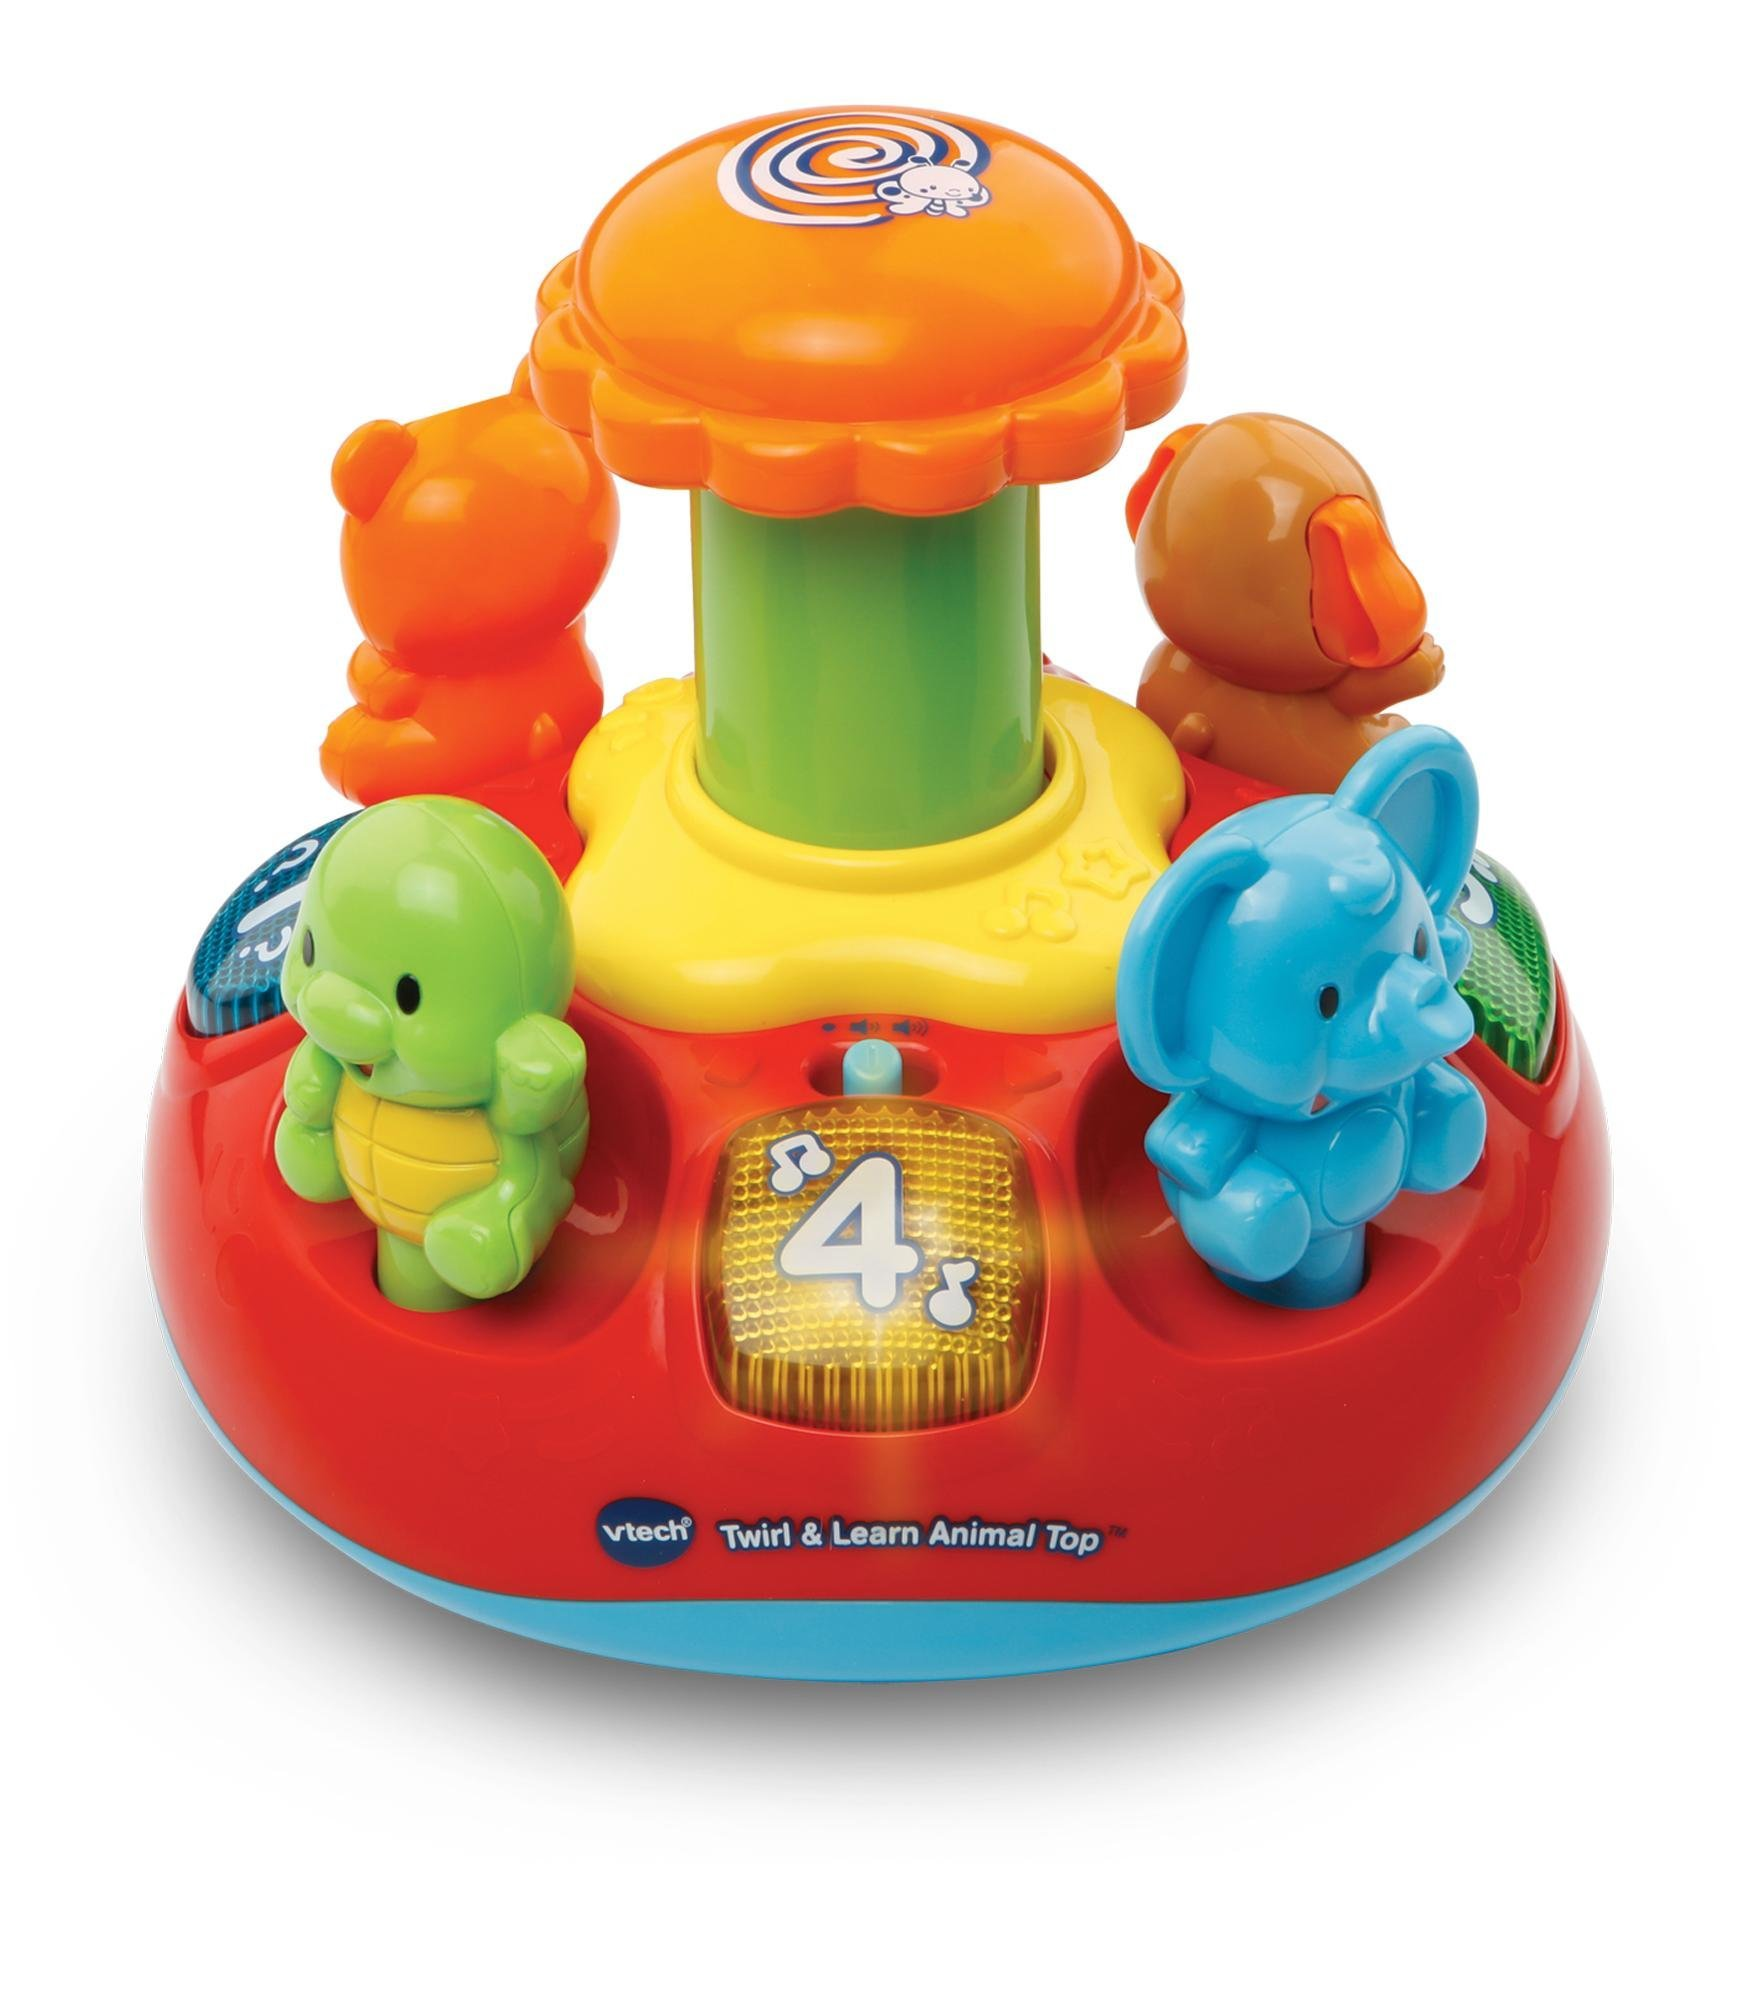 VTech Jouet Haut Toupie Push-and-Play Multicolore VTech